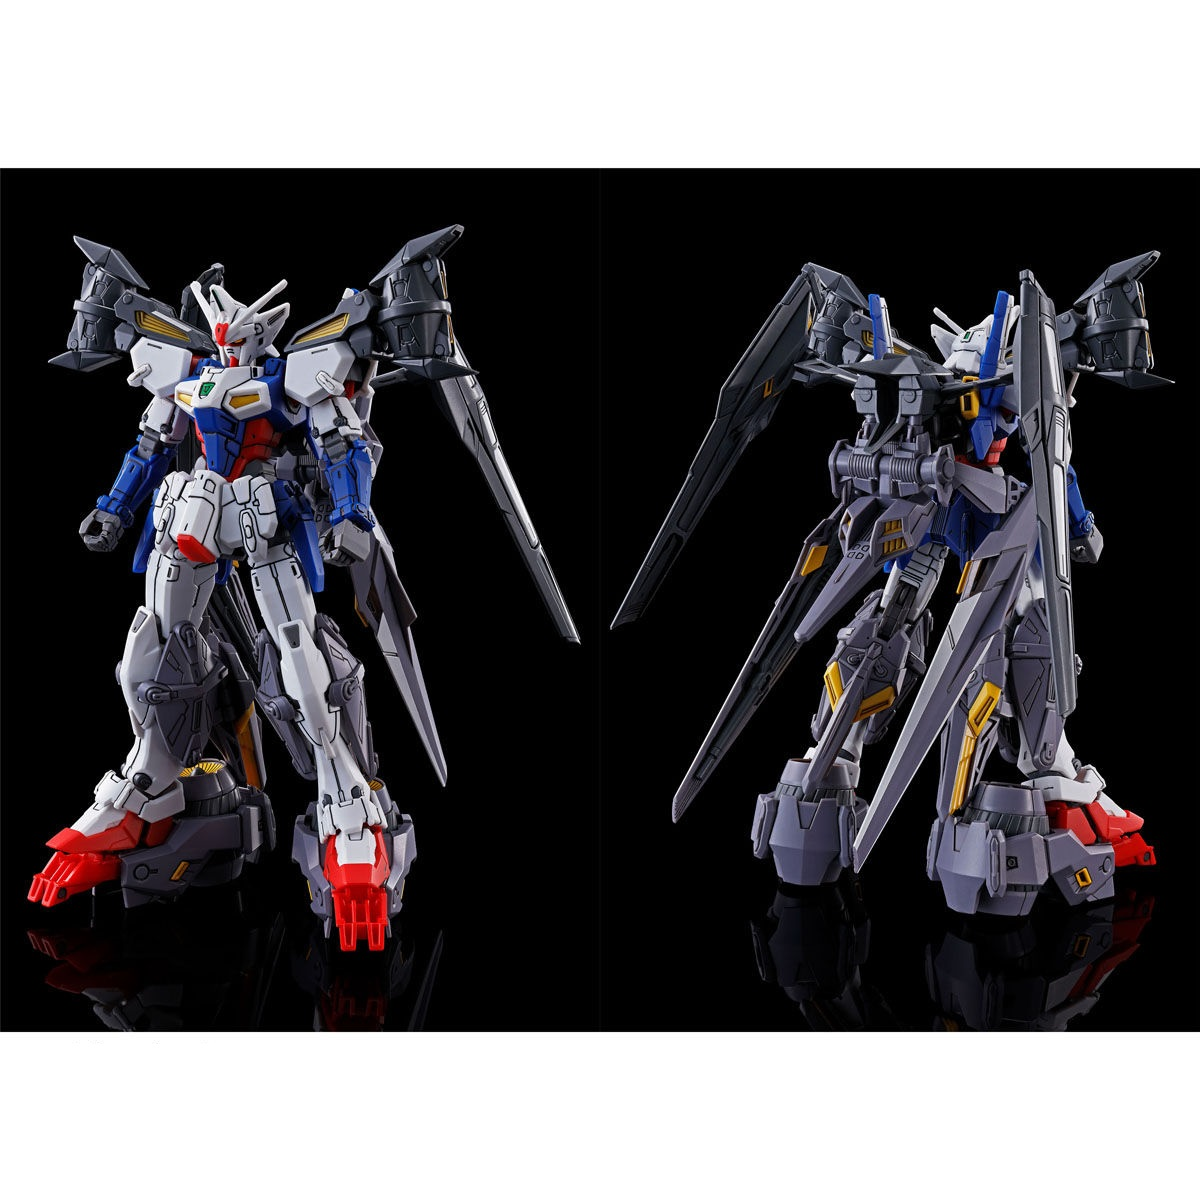 HG 1/144 ASSAULT BOOSTER & HIGH MOBILITY UNIT for GUNDAM GEMINASS 01 [Aug 2021 Delivery]